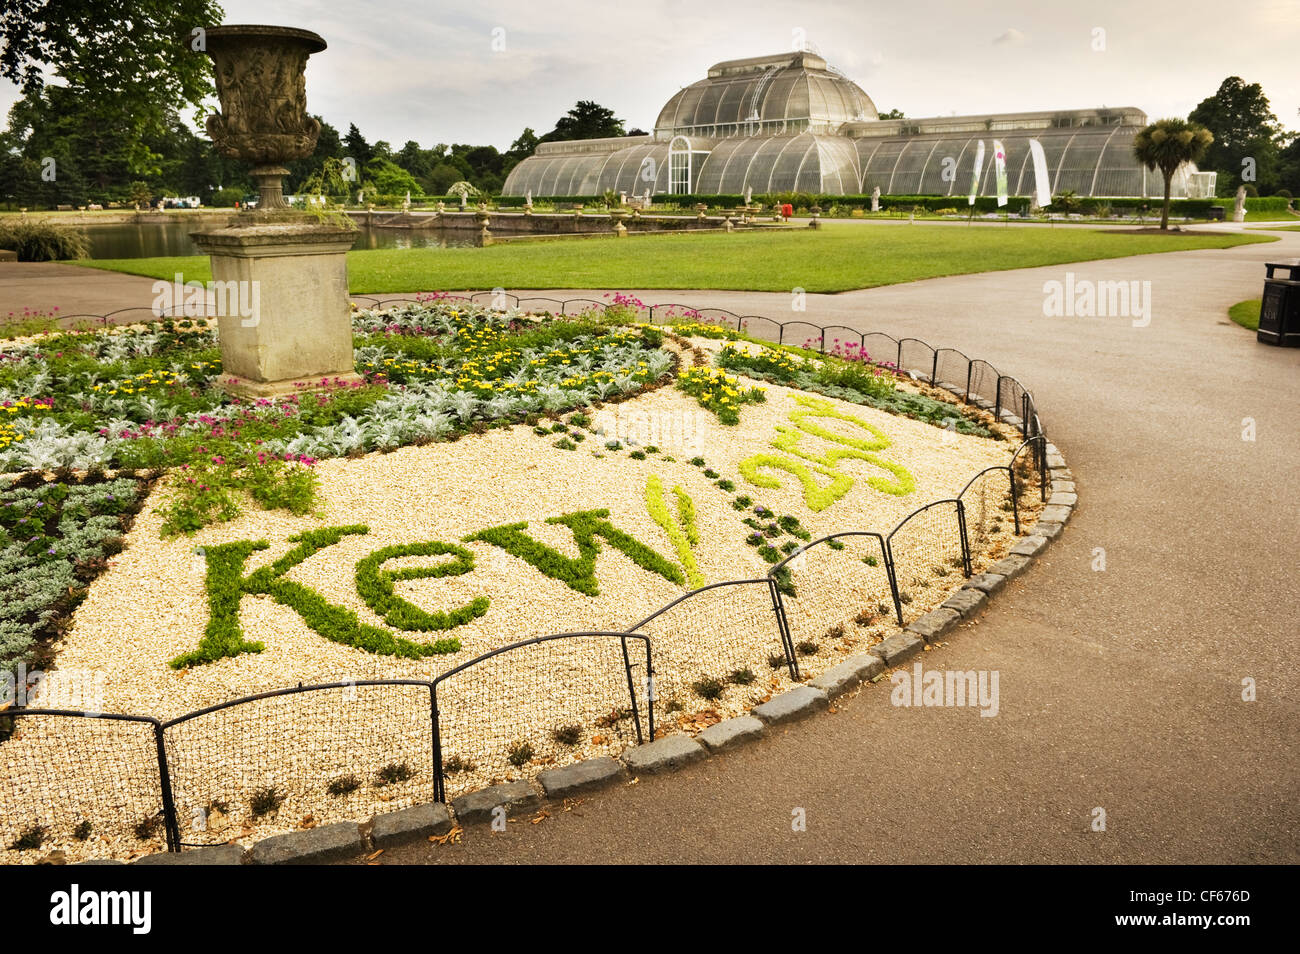 The 250th anniversary roundabout in flower at Kew Gardens. - Stock Image